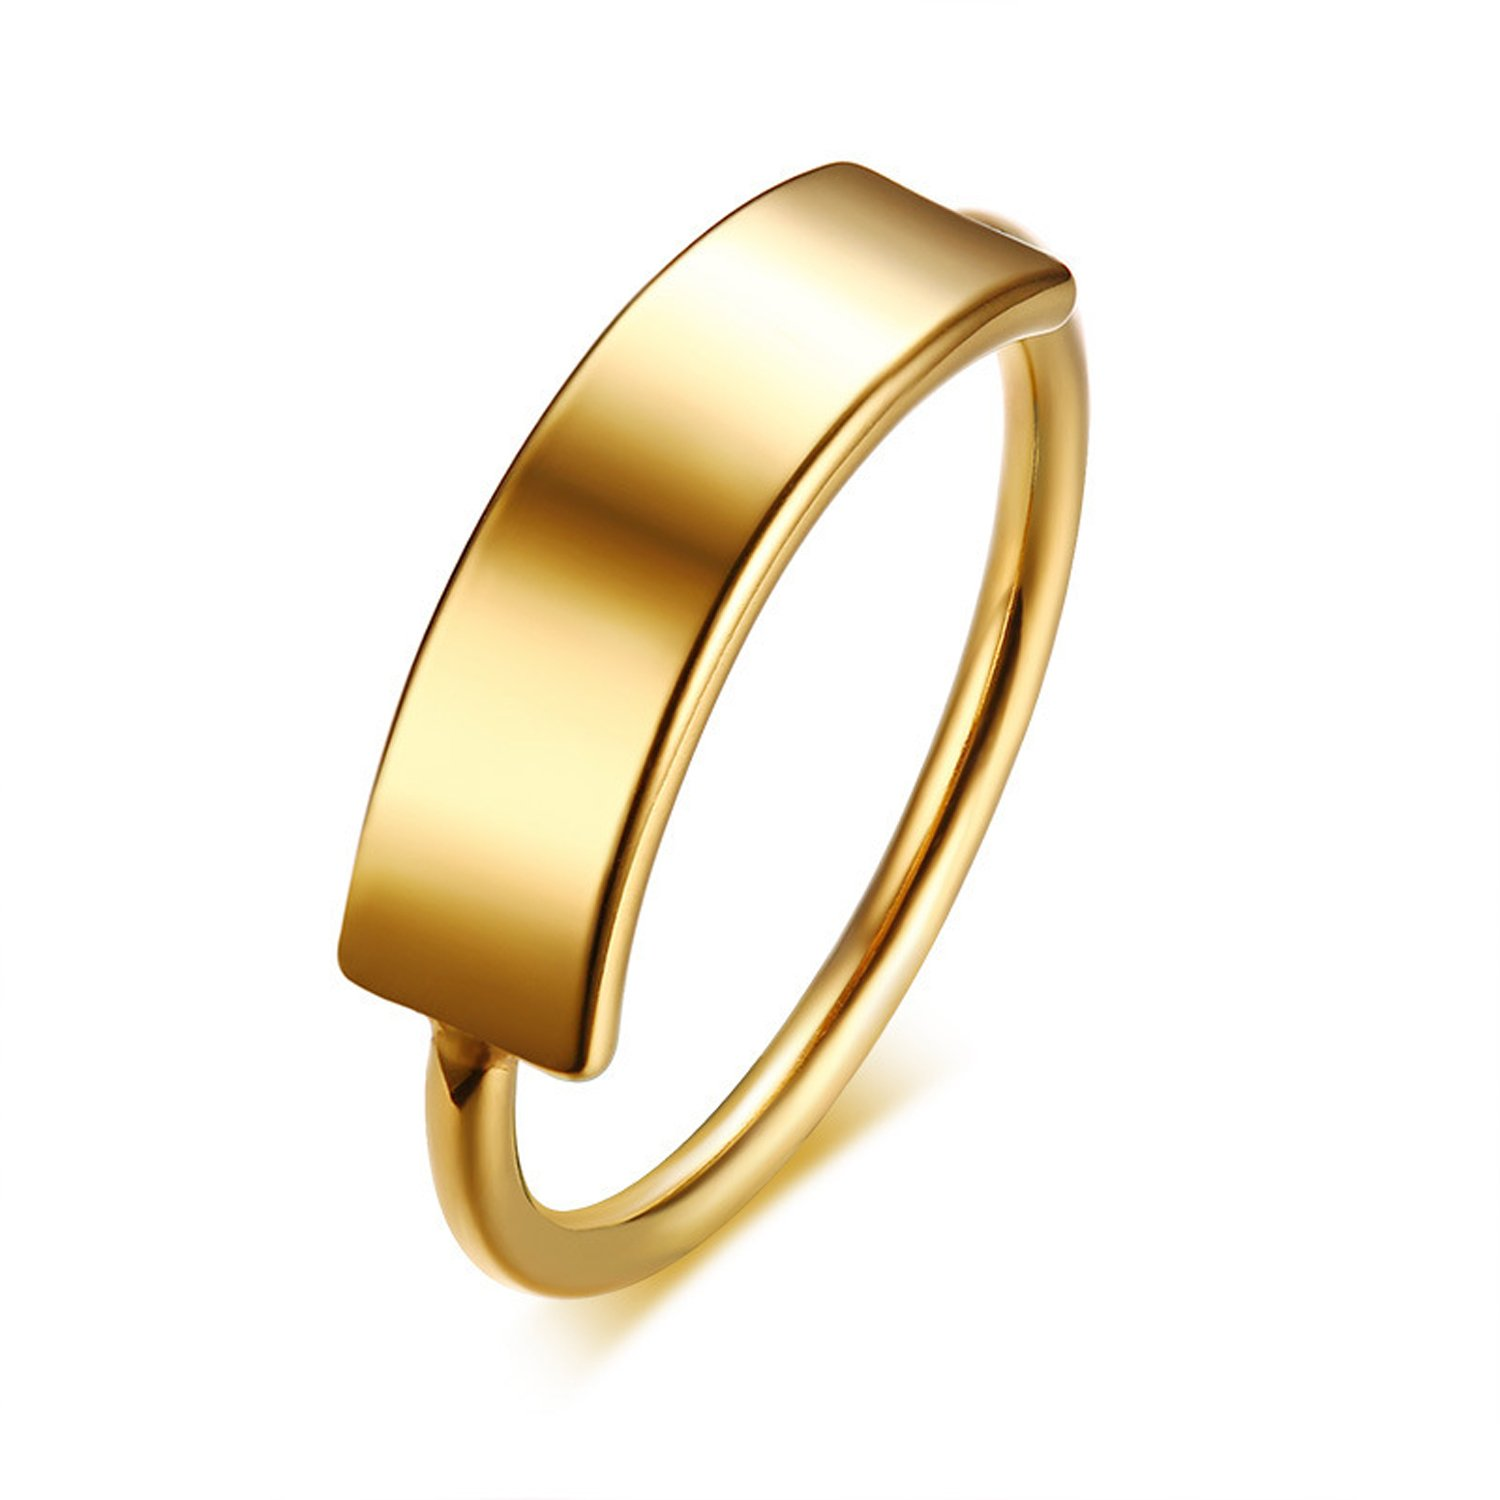 Tcbasrt Women's Gold-plated High Polished Comfort stainless steel ring Jin sheng feng